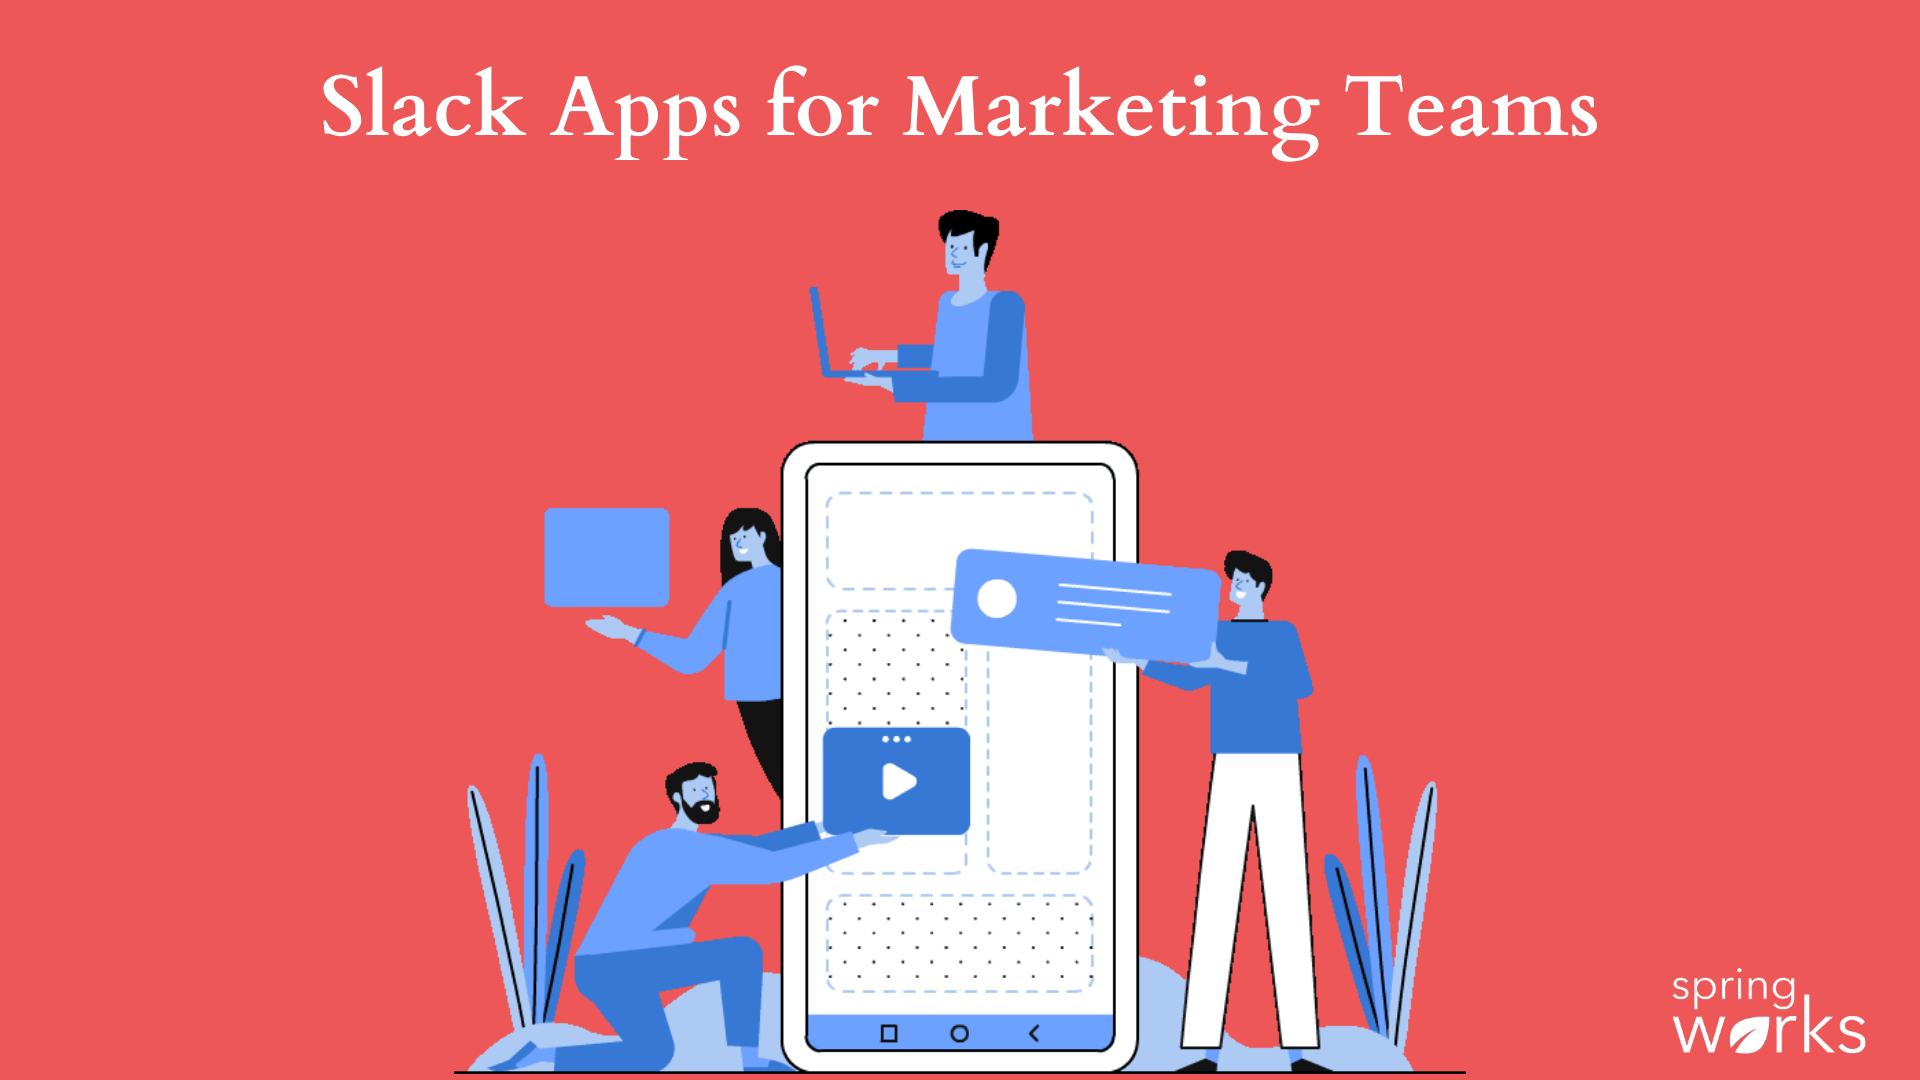 slack apps for marketing teams